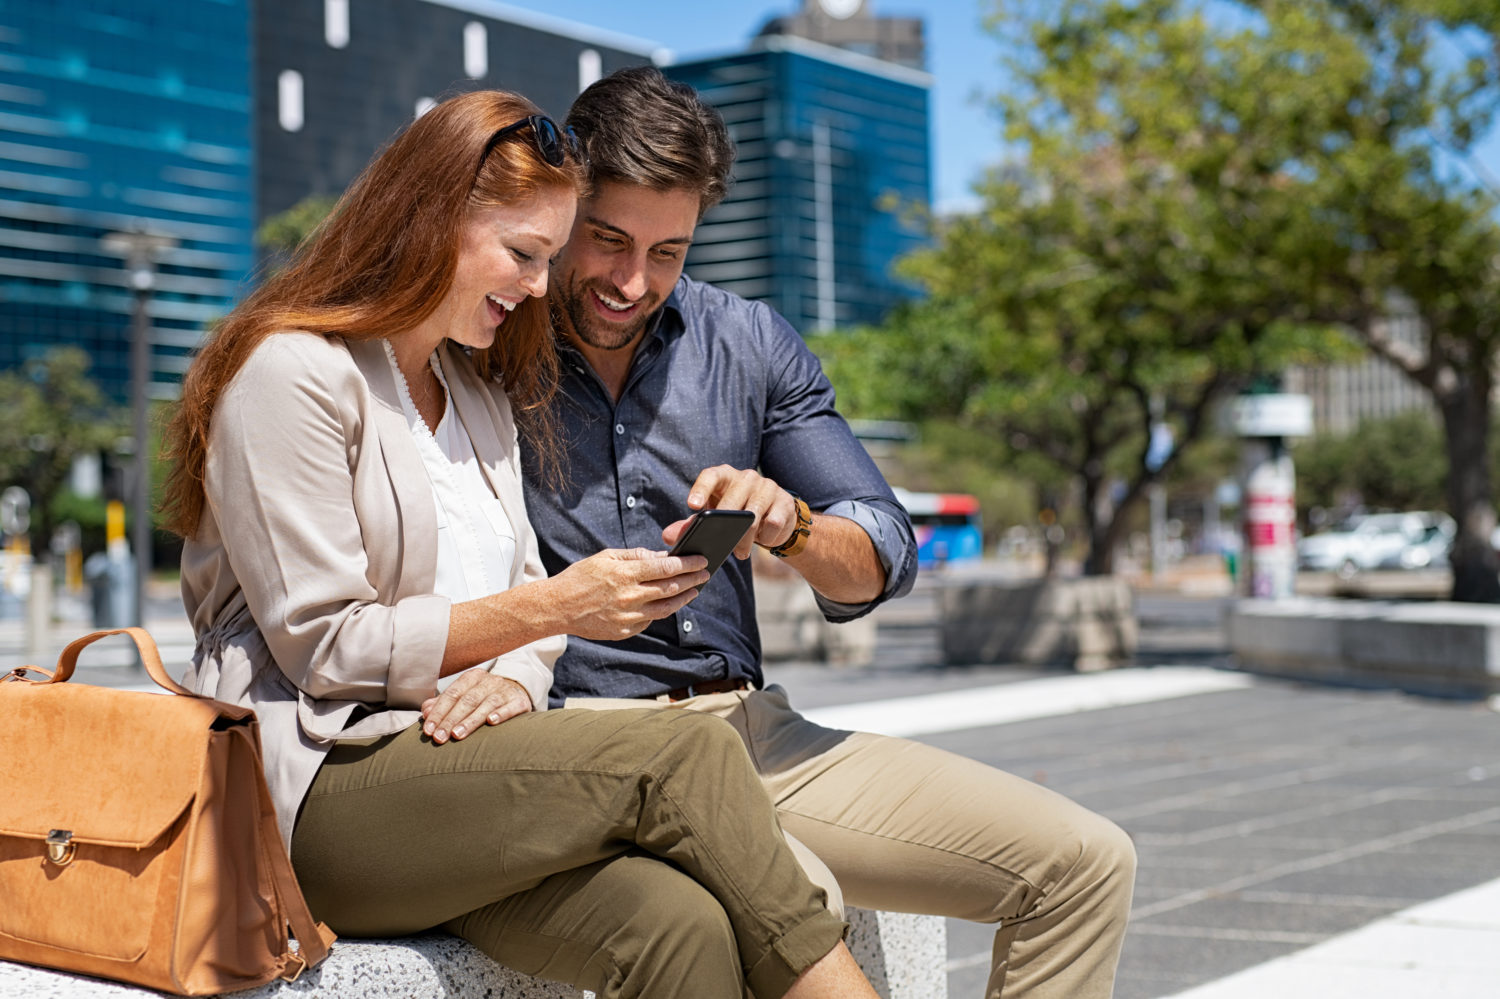 Red-haired woman and man looking excitedly at a phone